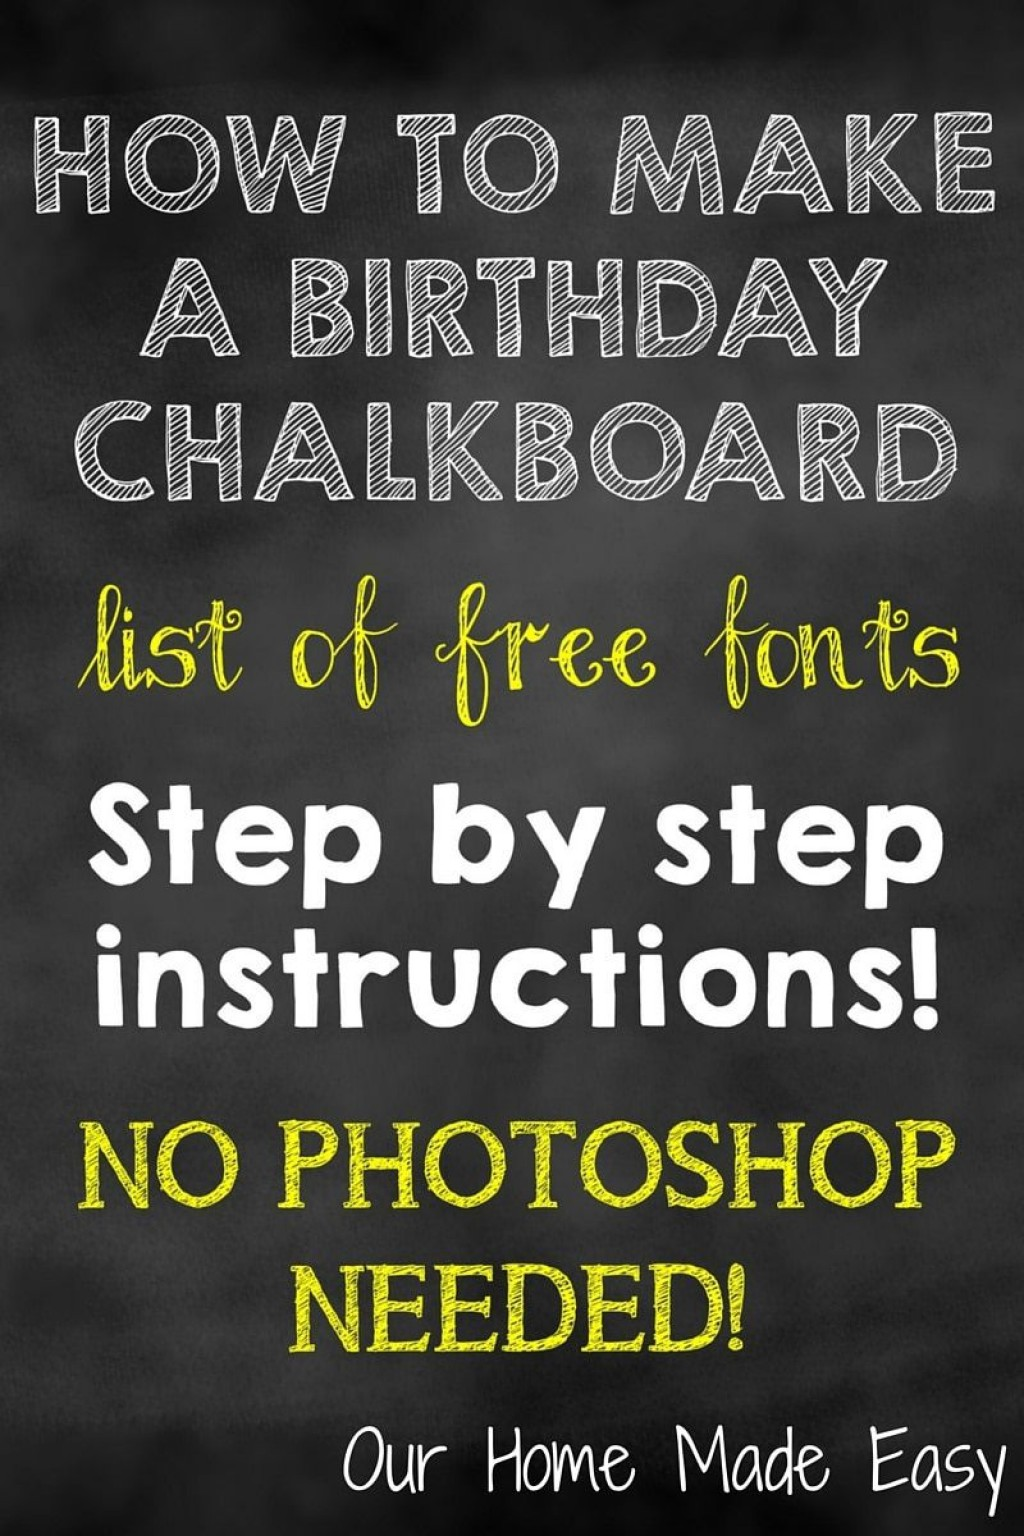 005 Phenomenal Free Birthday Chalkboard Template High Definition  First Printable BabyLarge